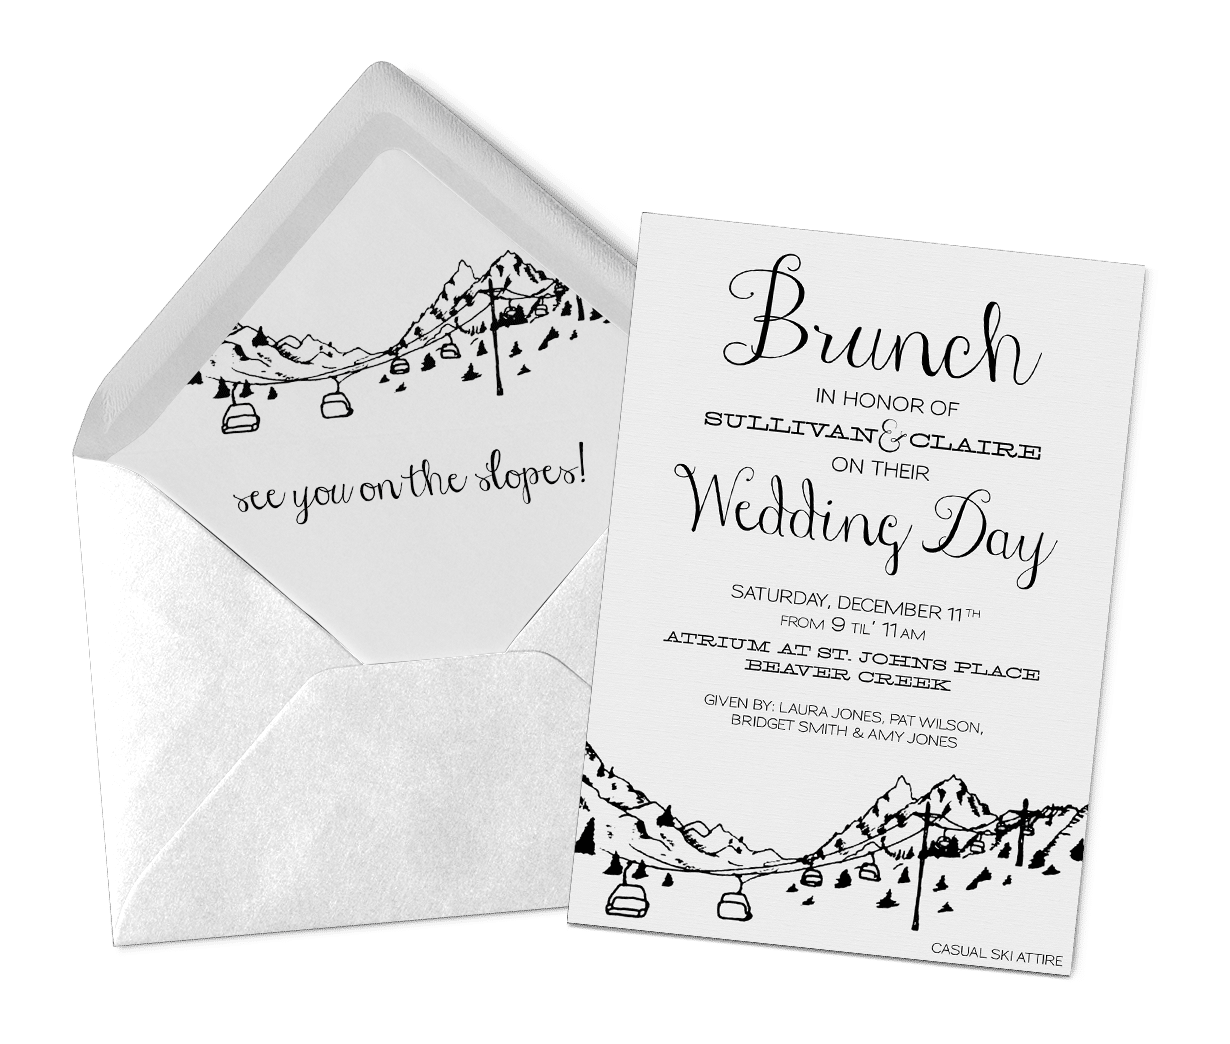 Wedding Day Brunch Invitations